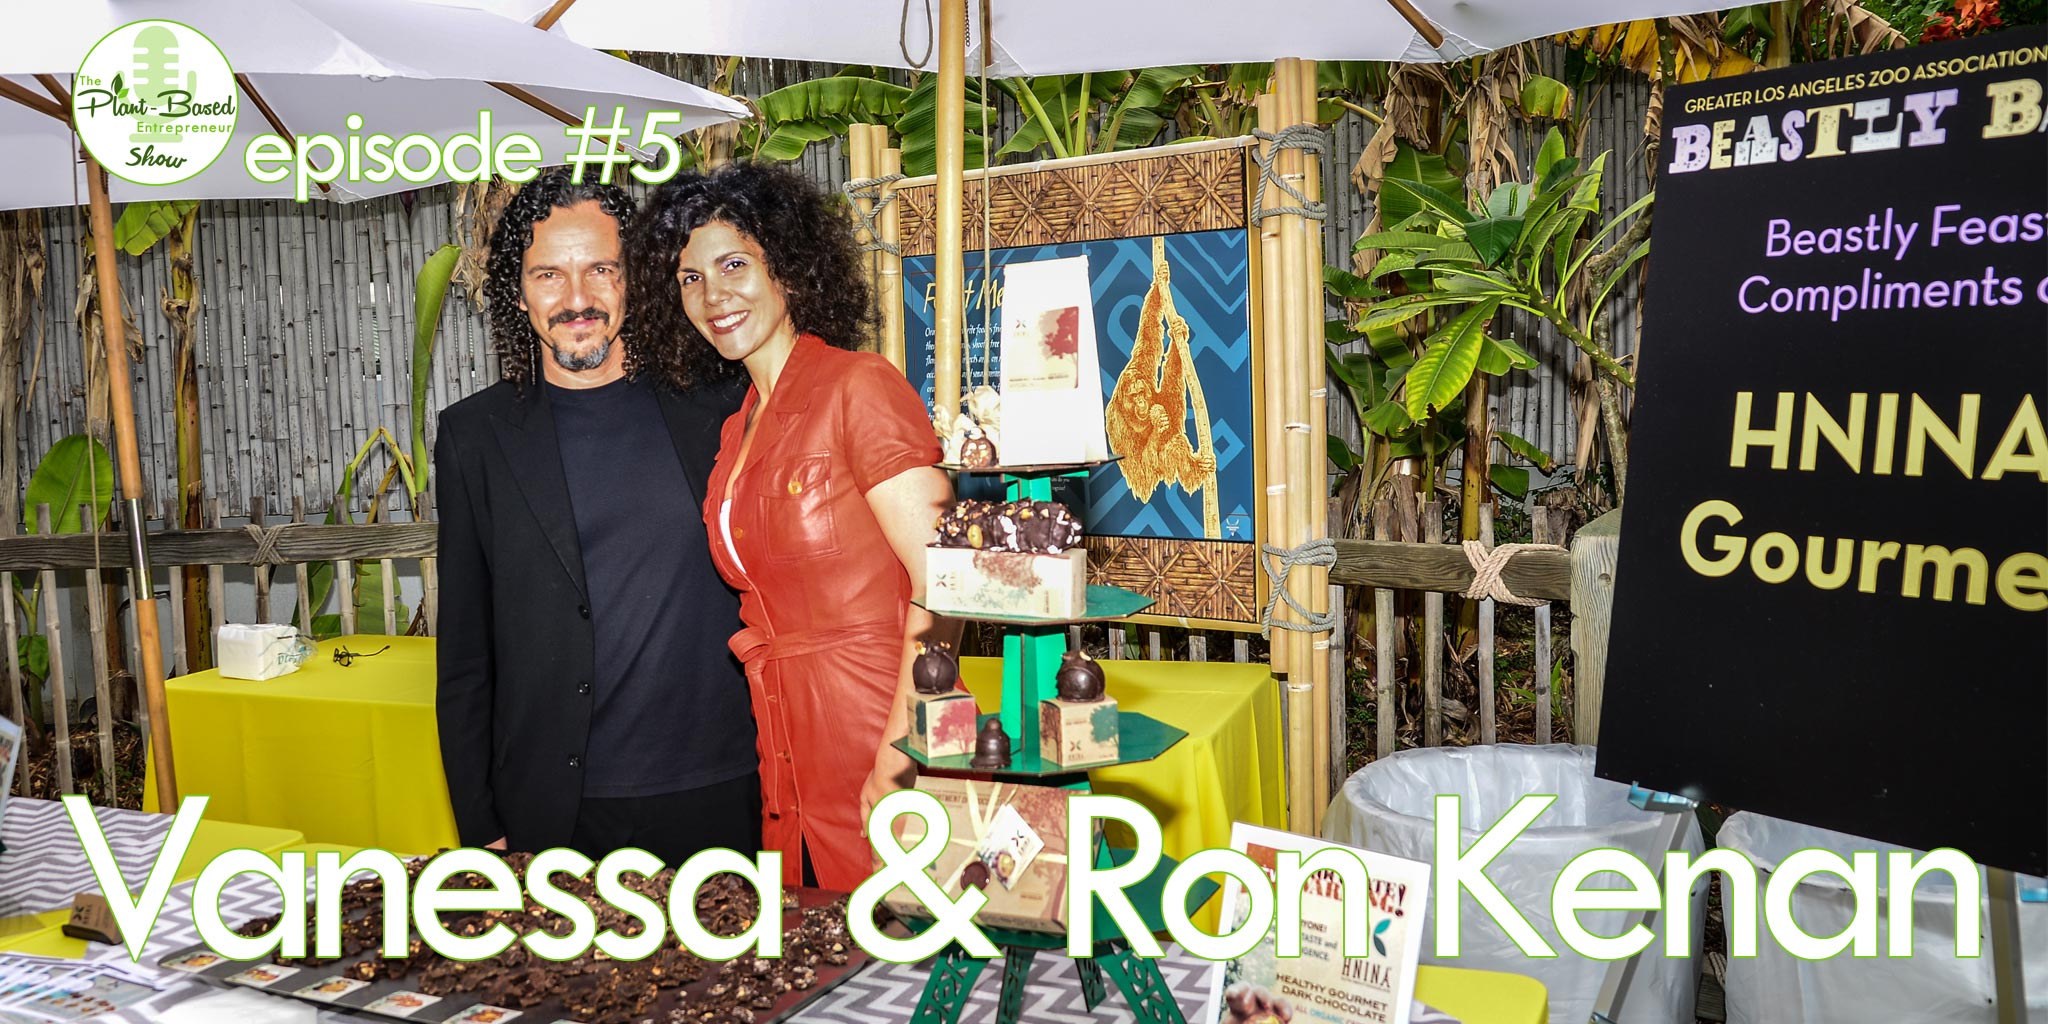 Episode #5 - Vanessa & Ron Kenan